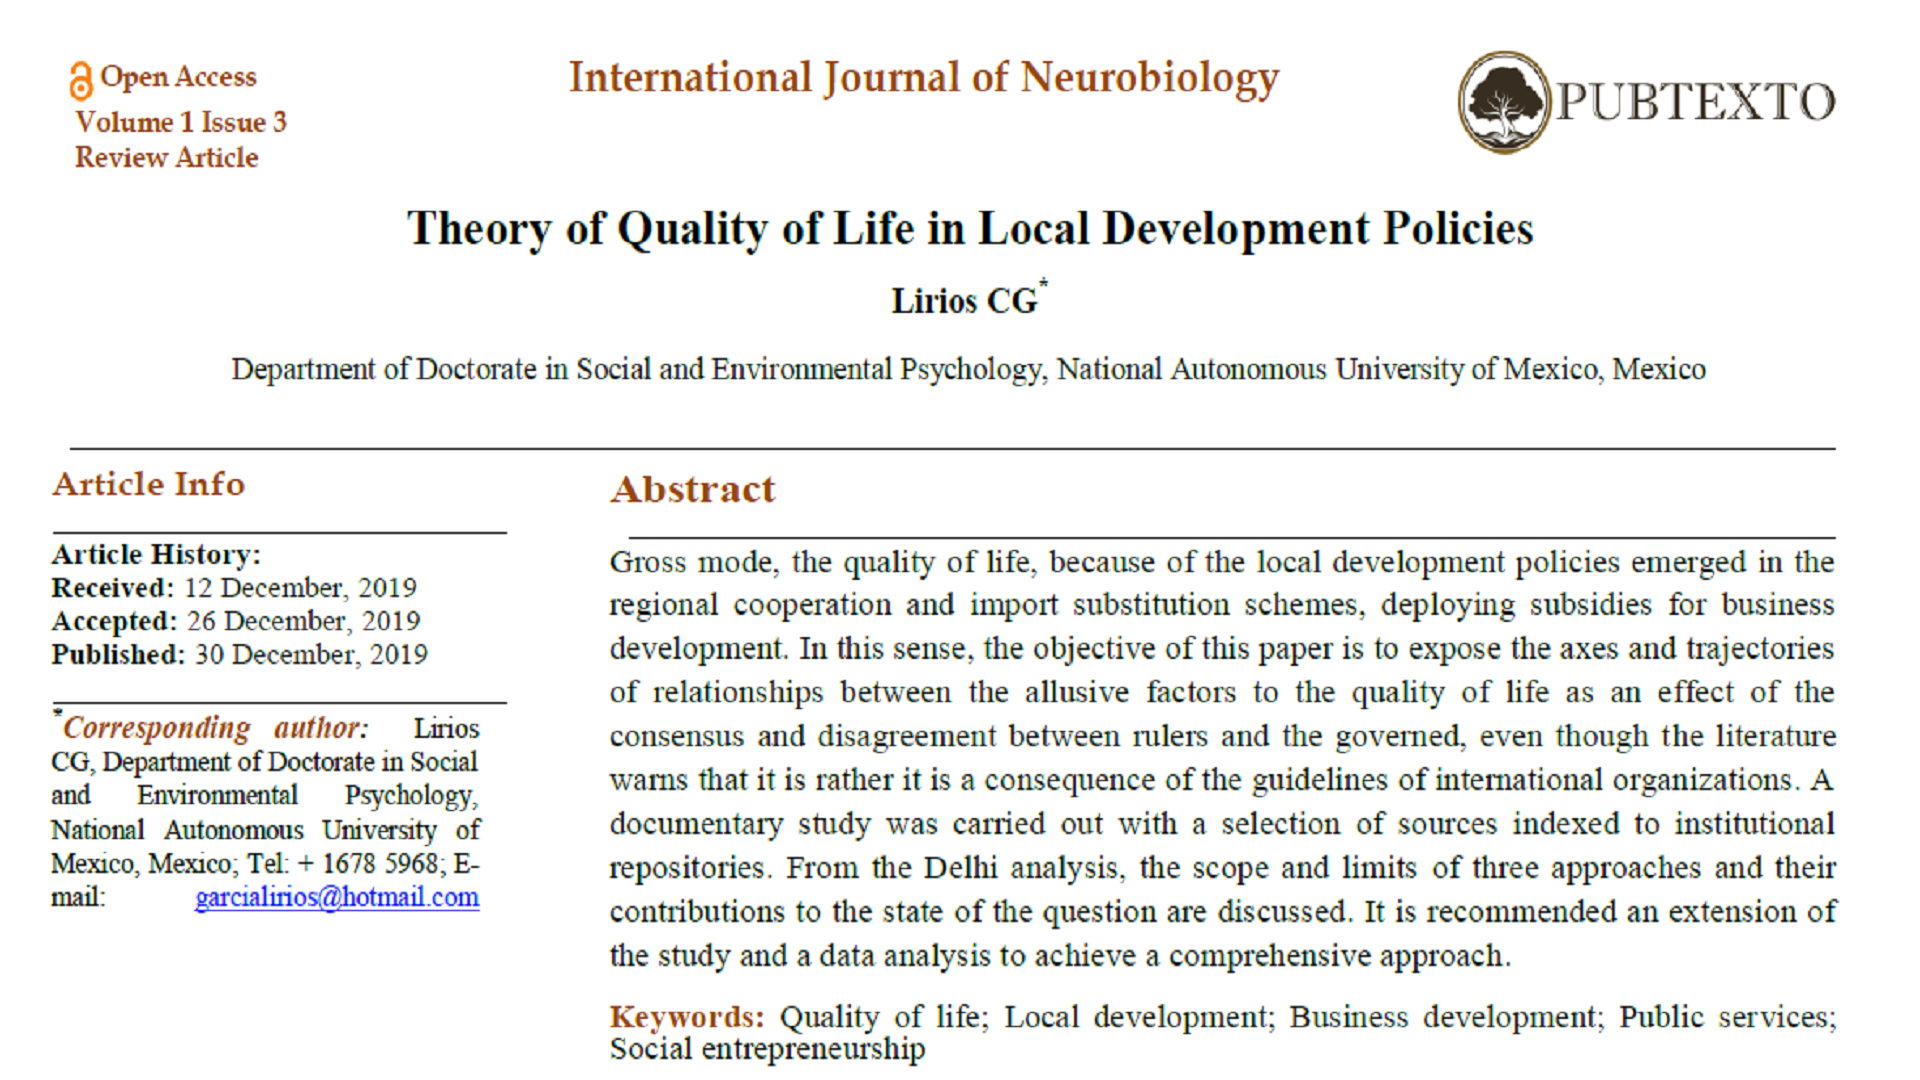 Theory of Quality of Life in Local Development Policies